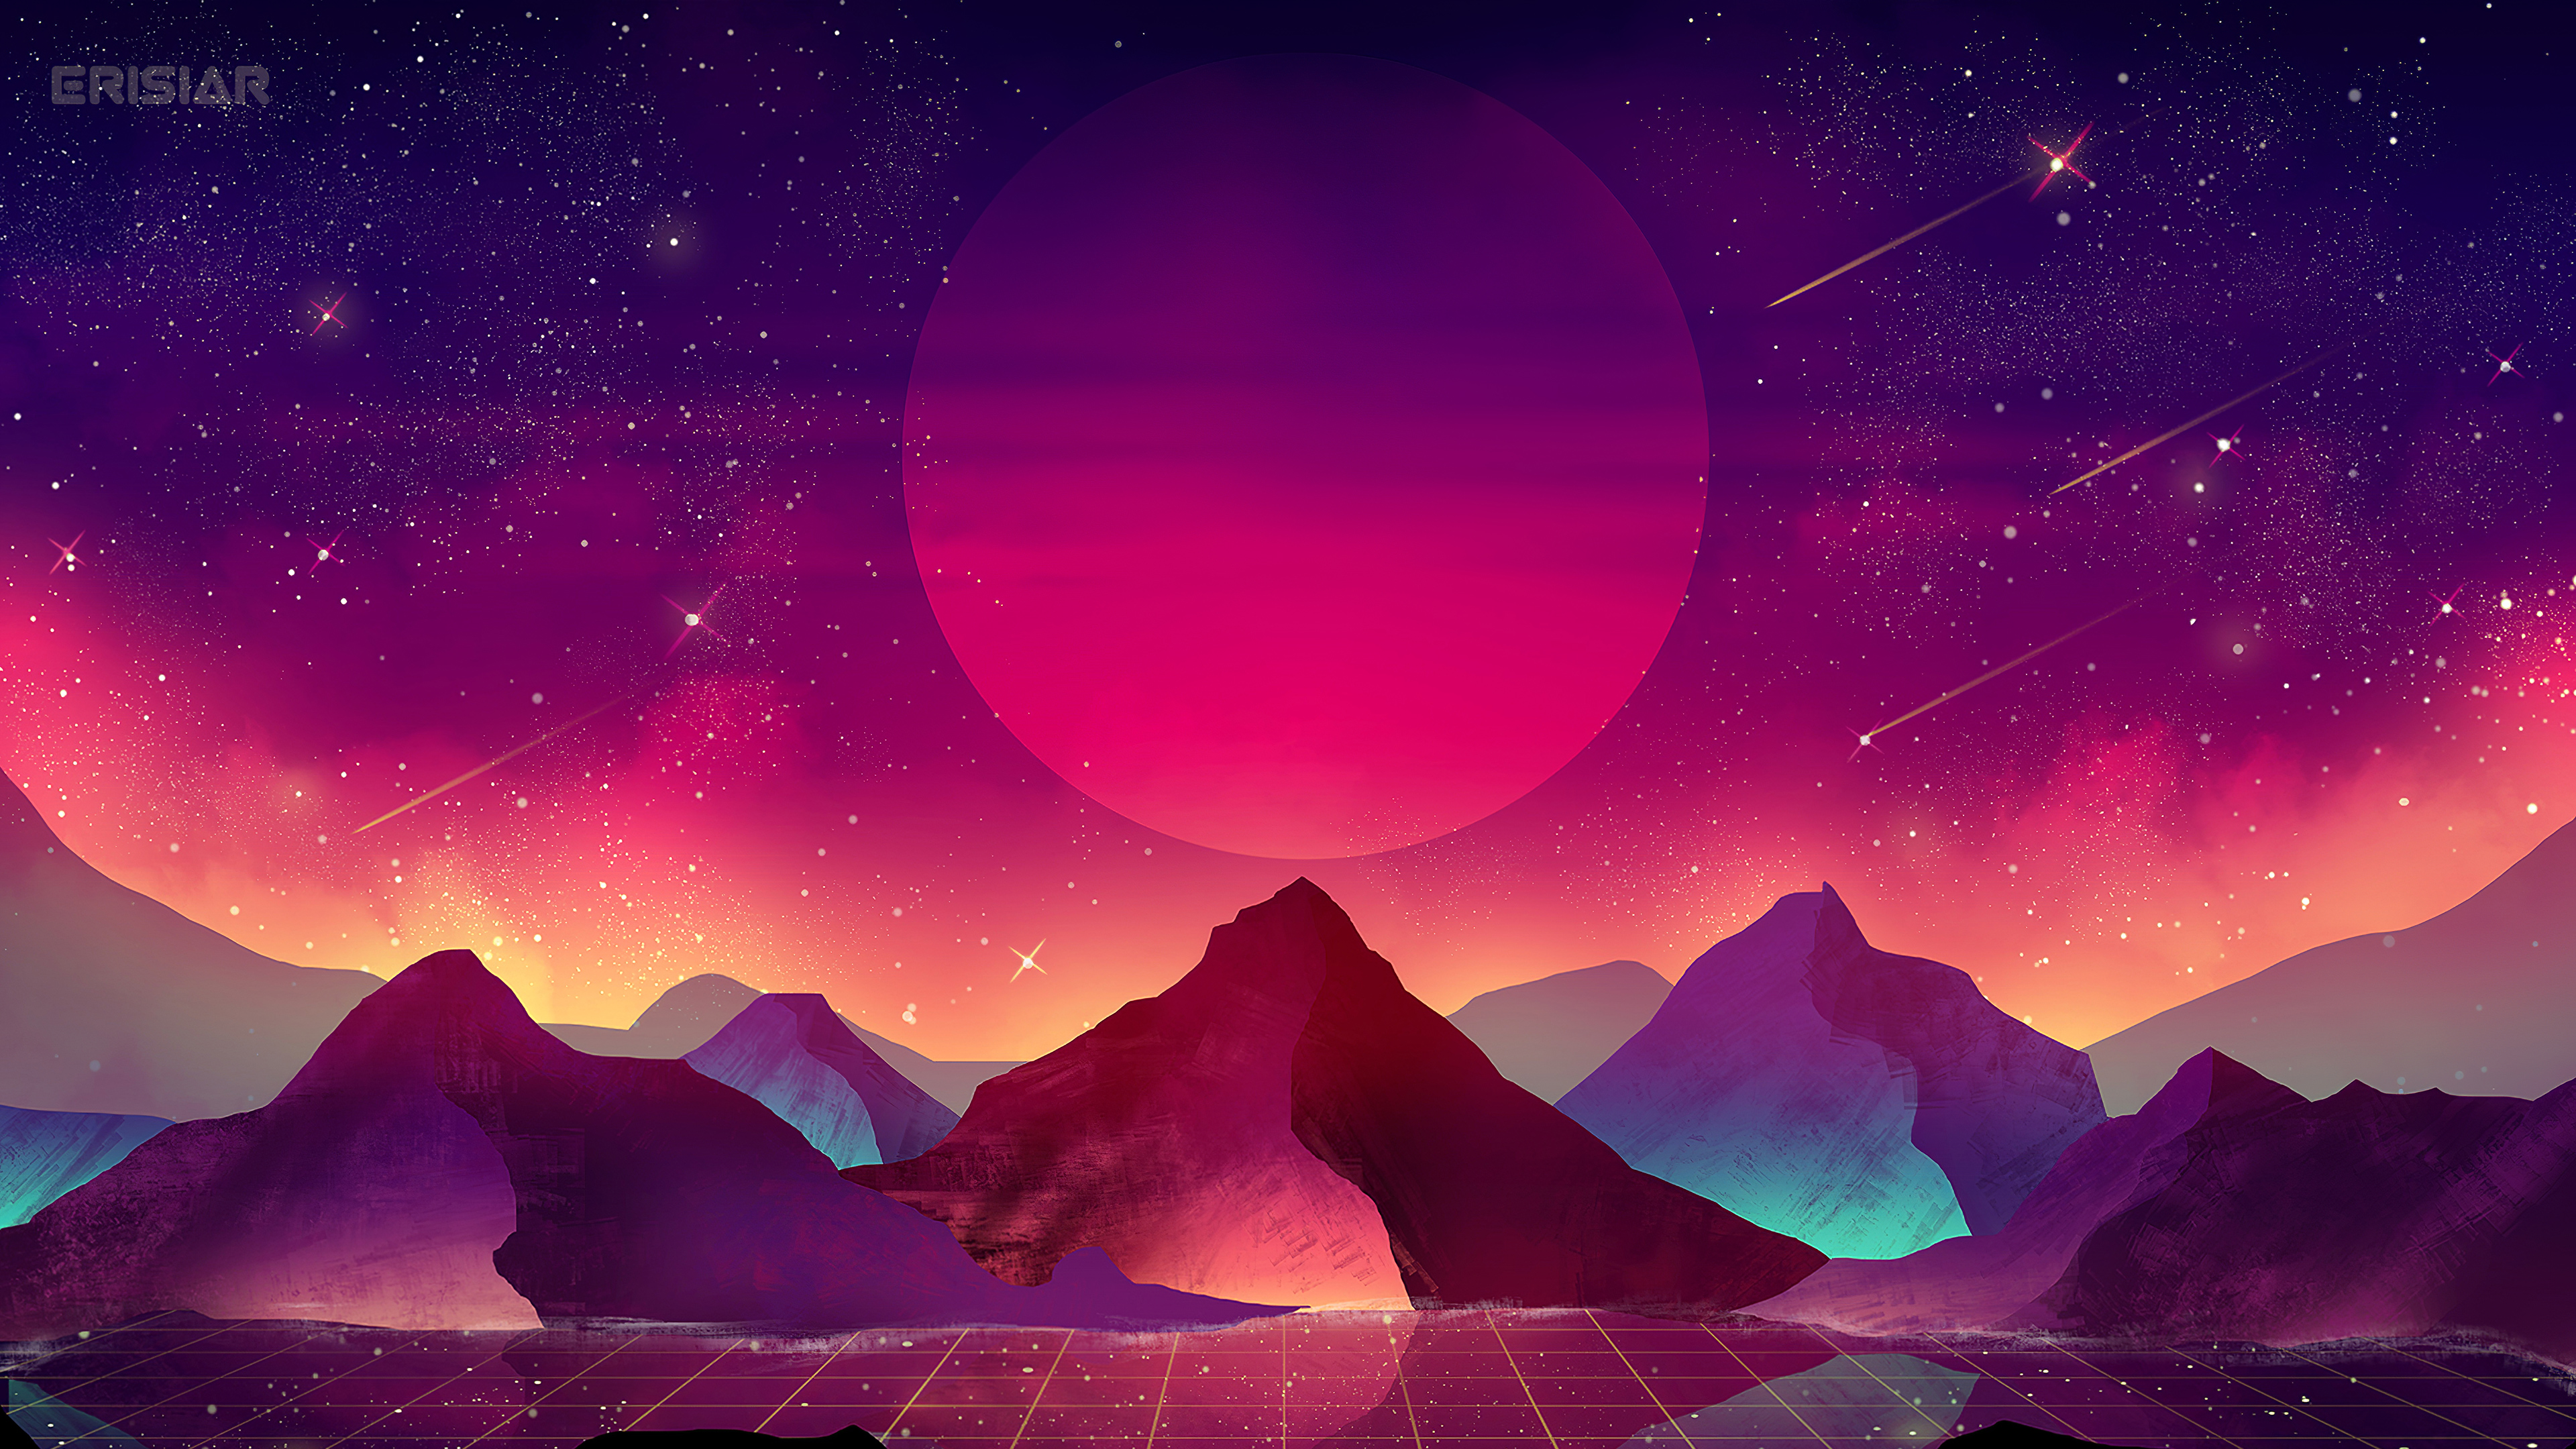 320x240 Terrain Vaporwave 4k Apple Iphone Ipod Touch Galaxy Ace Hd 4k Wallpapers Images Backgrounds Photos And Pictures